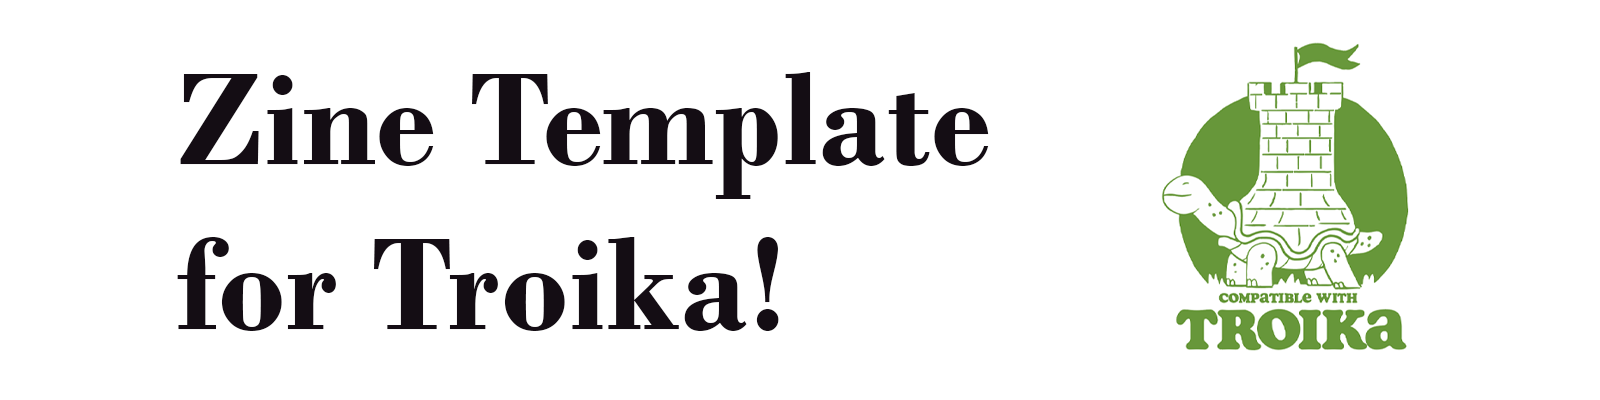 Zine Template for Troika!